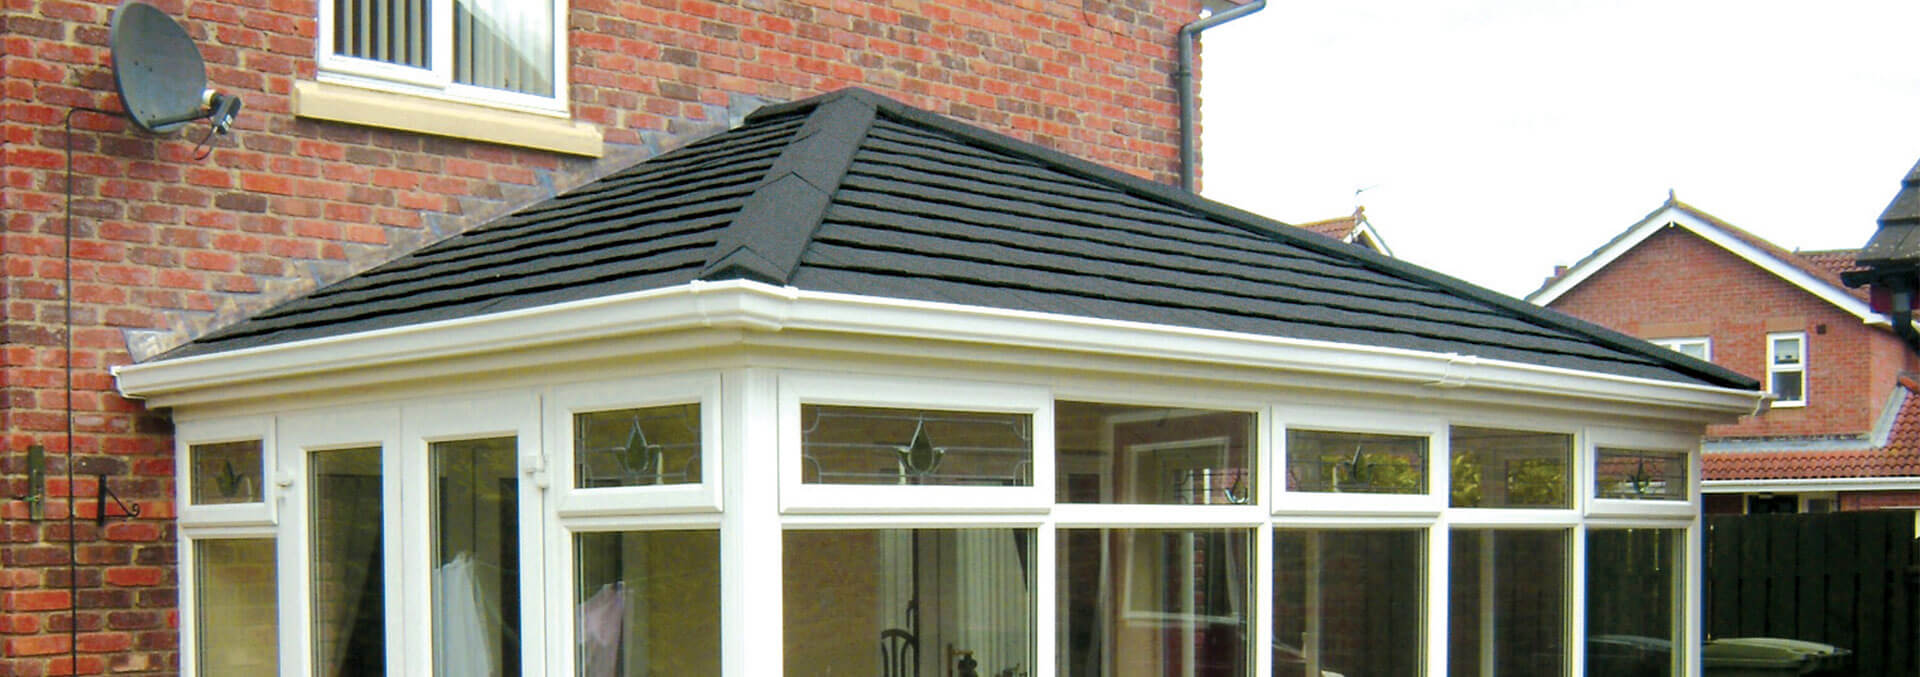 Large uPVC conservatory with grey tiled roof